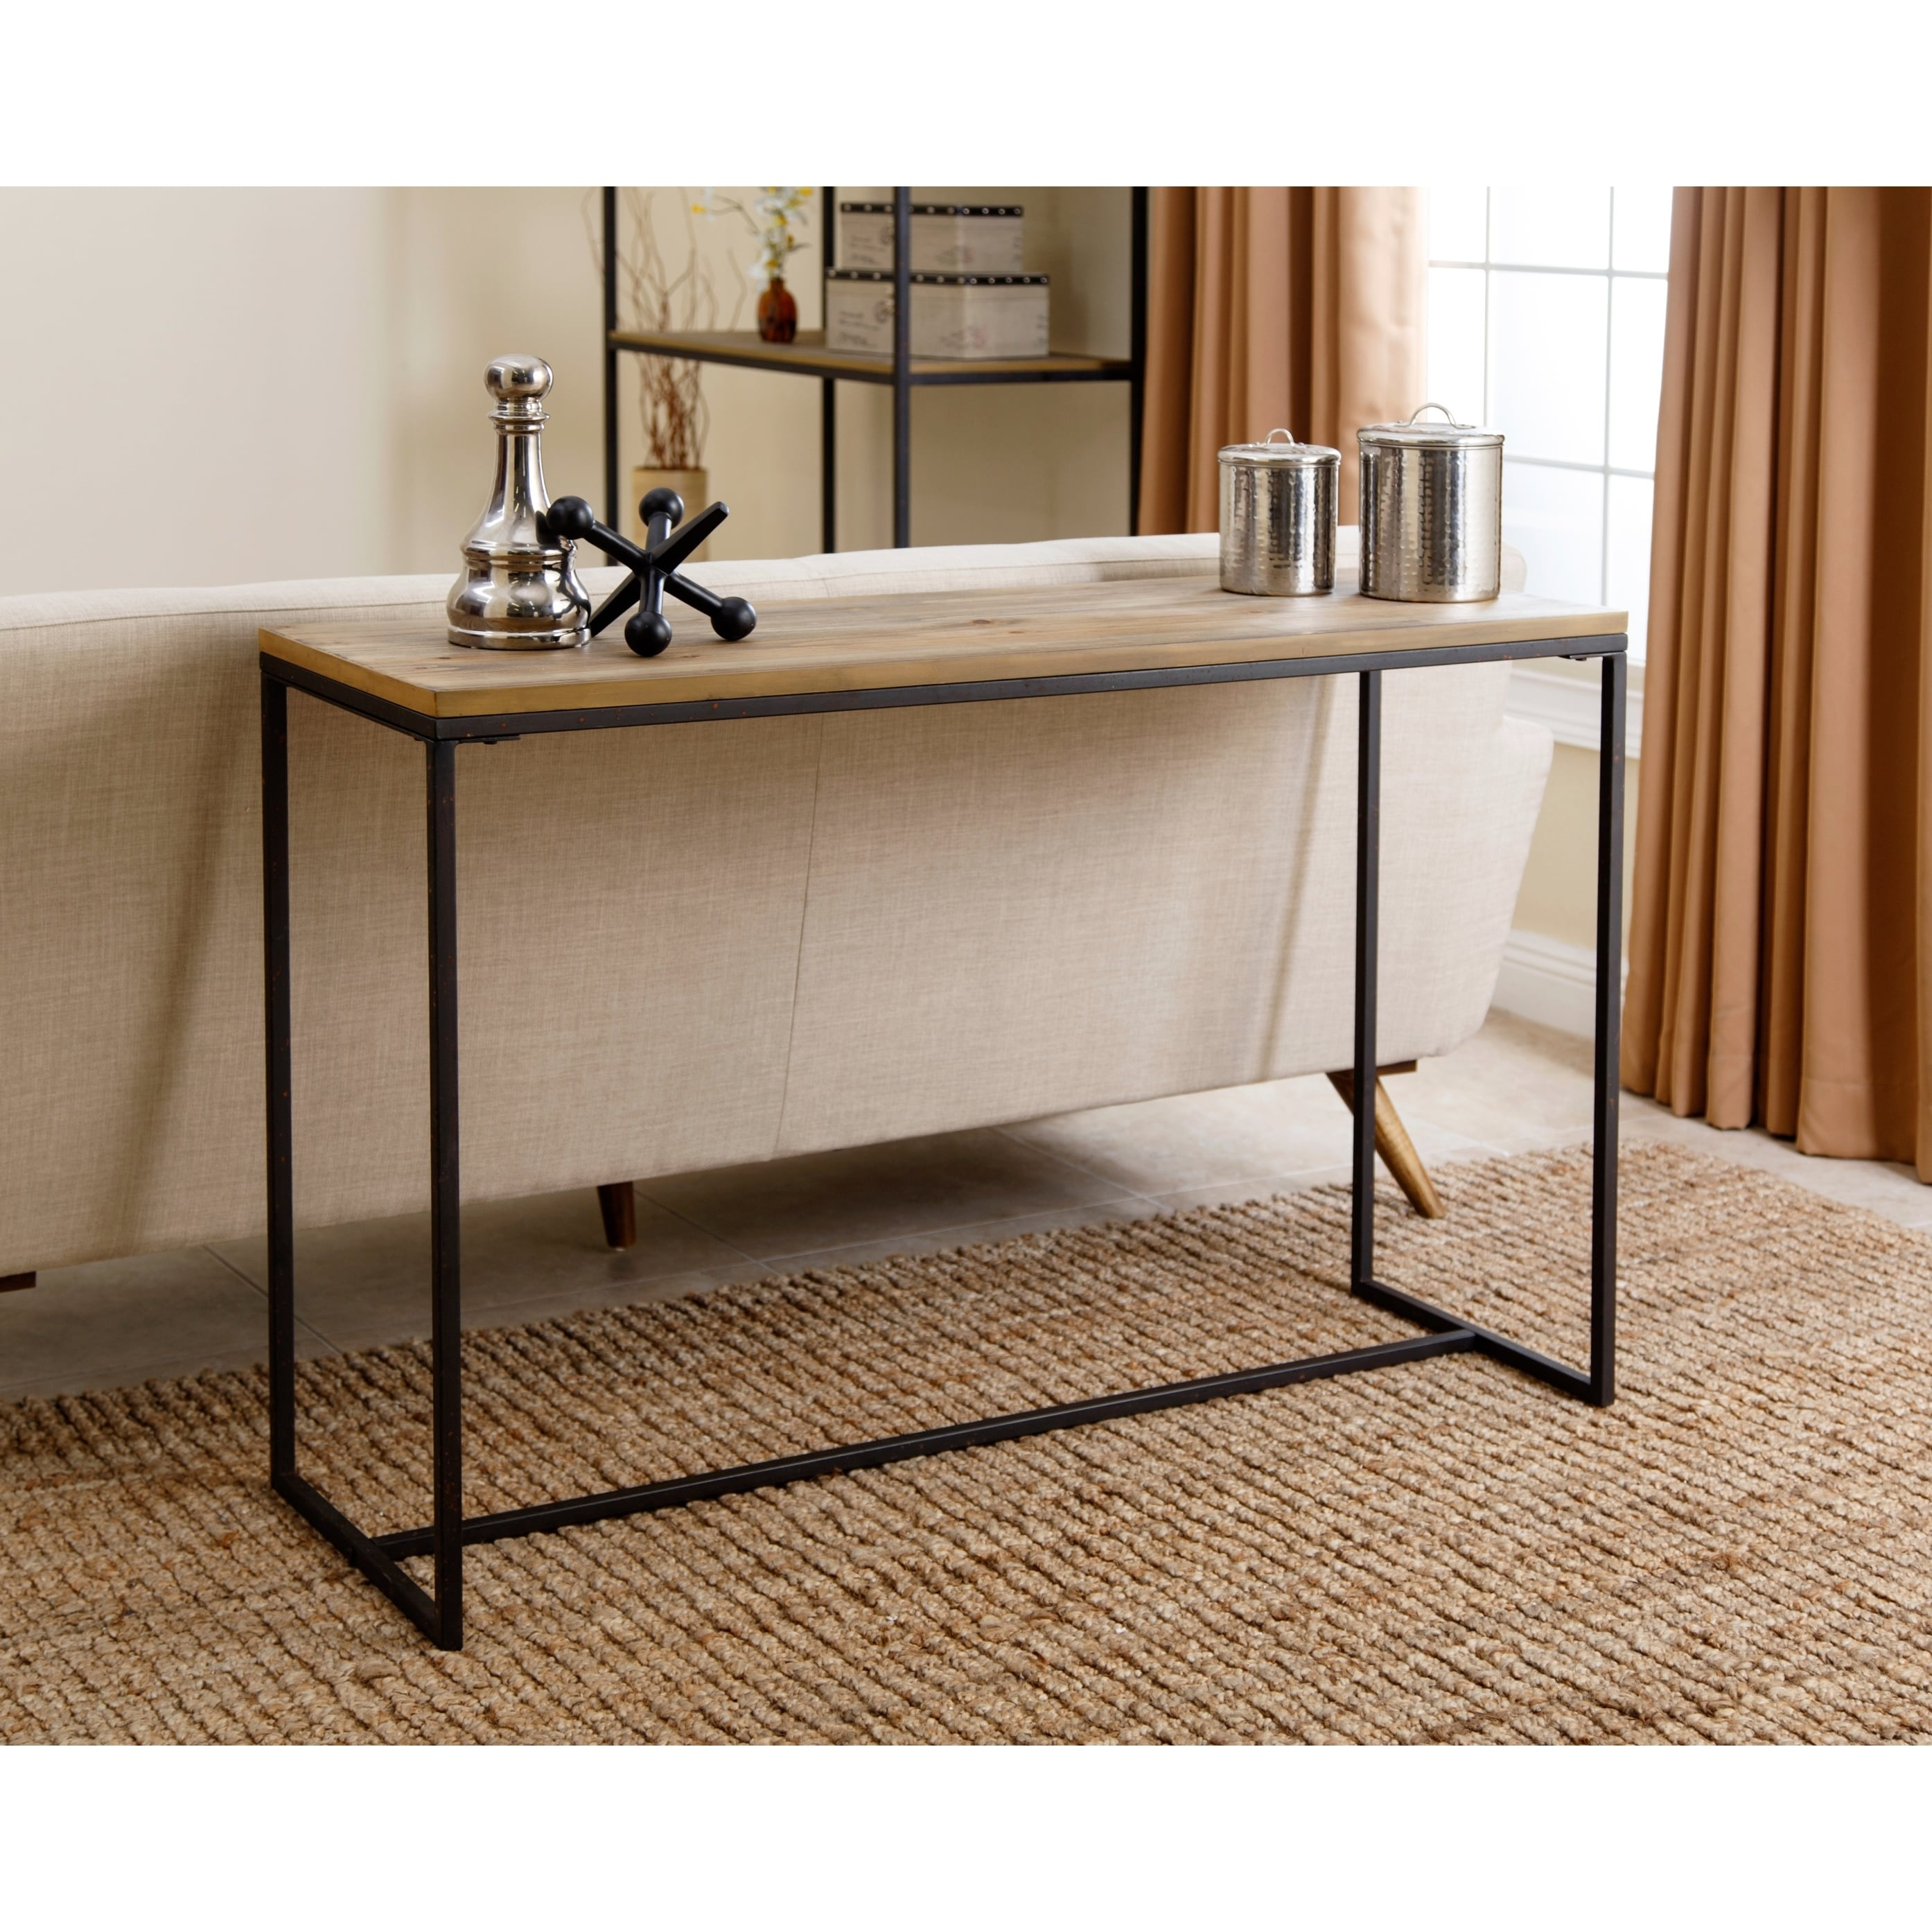 Abbyson Kirkwood Industrial Rustic Sofa Table   Free Shipping Today    Overstock   18817907